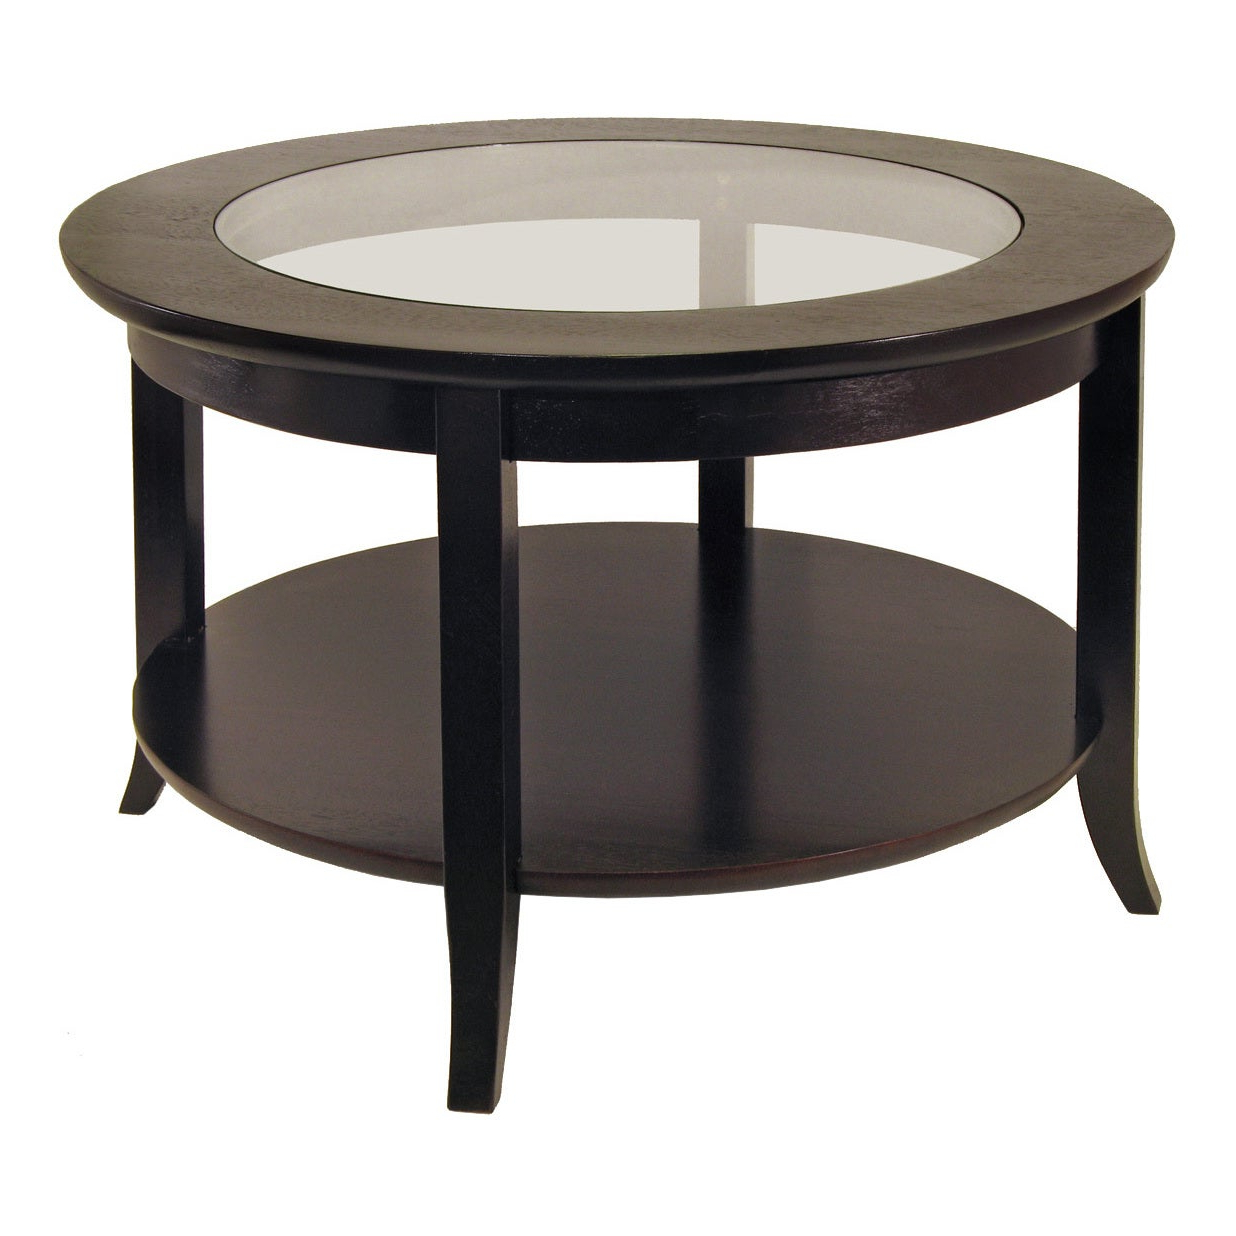 Copper Grove Shasta Trinity Wood/ Glass Inset Coffee Table With Flared Legs Inside Well Liked Copper Grove Halesia Chocolate Bronze Round Coffee Tables (View 4 of 20)